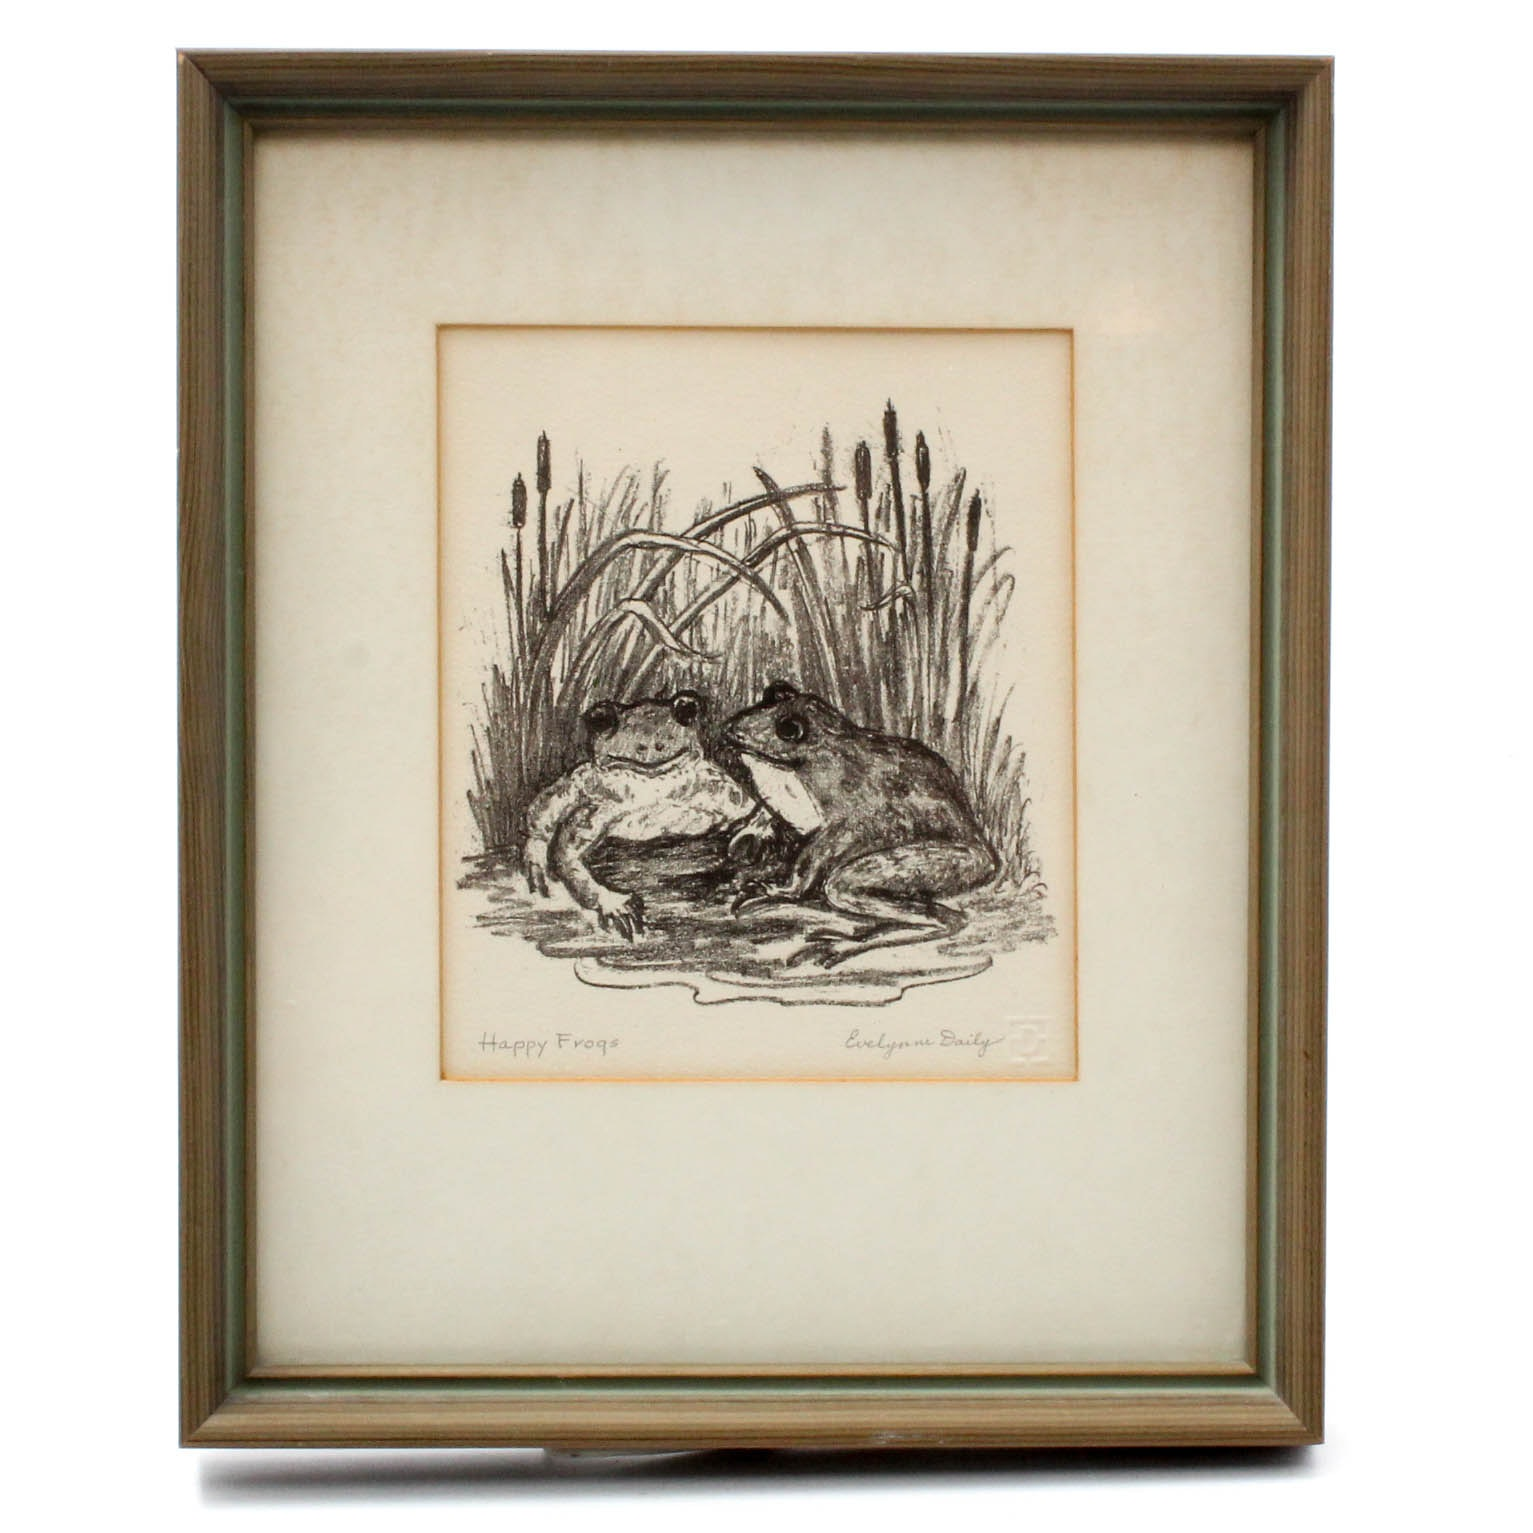 """Evelynne Daily Indiana Artist """"Happy Frogs"""" Etching"""